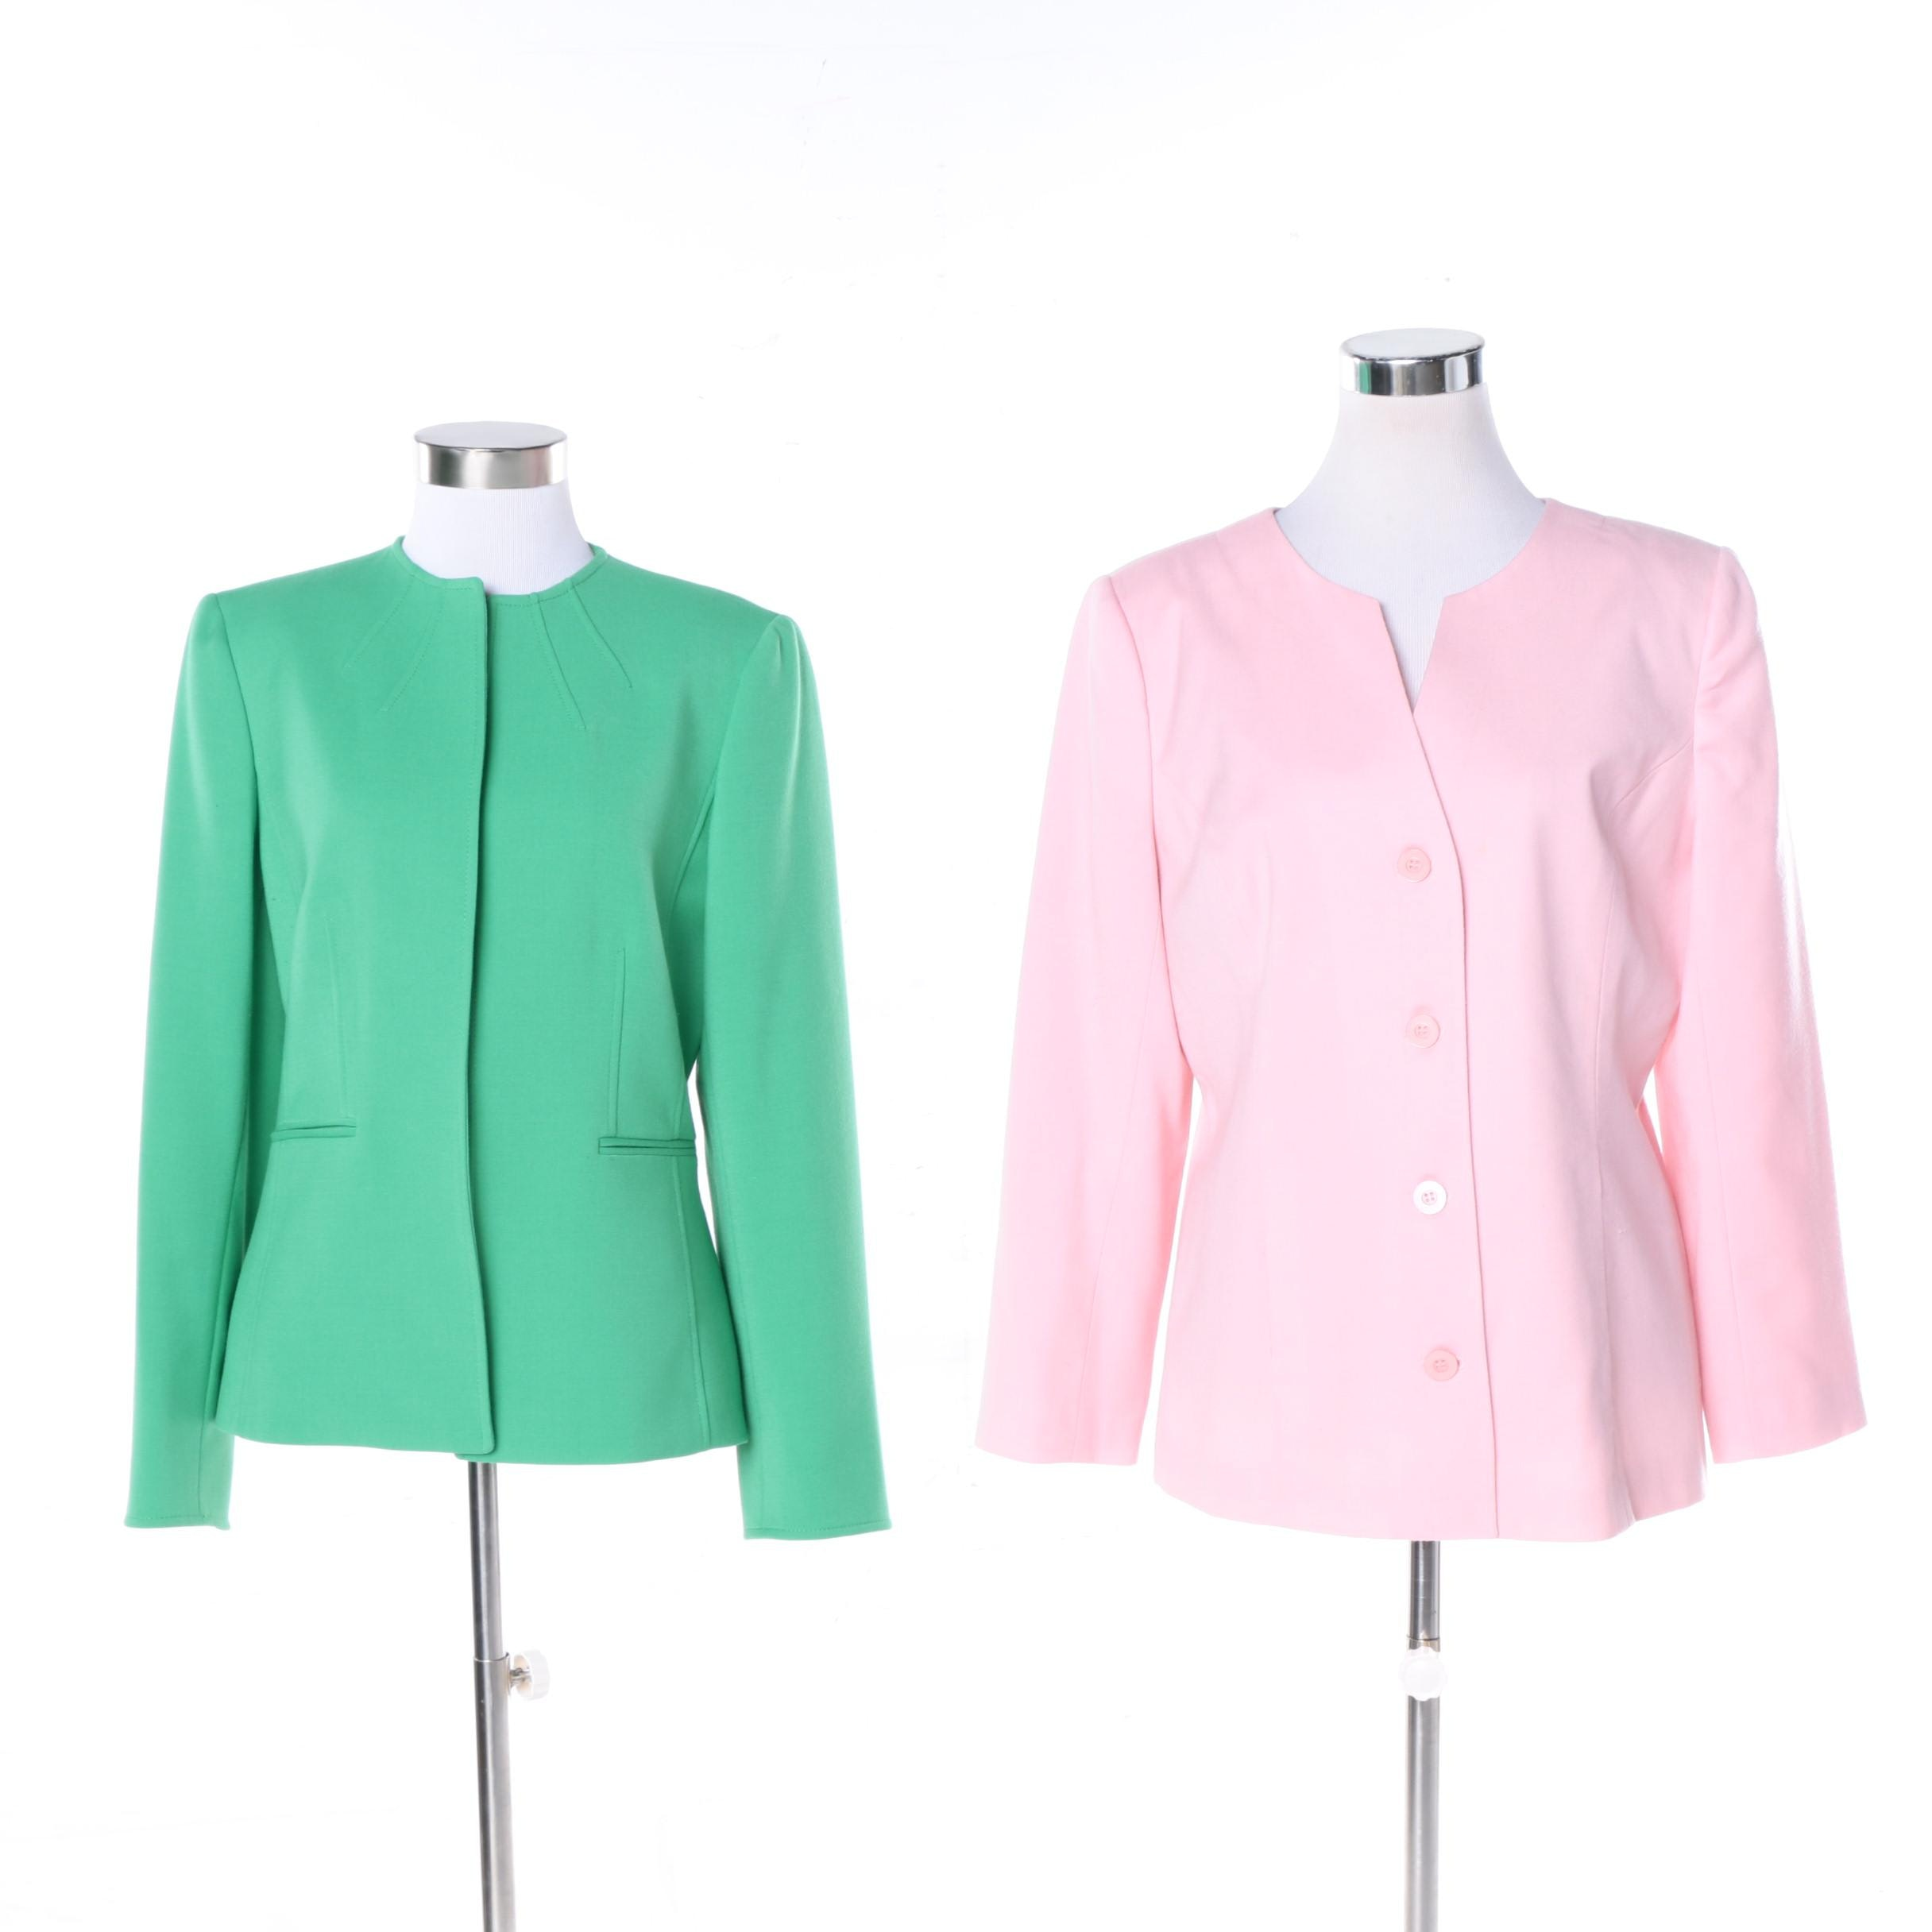 Women's Suit Jackets Including Tahari Arthur S. Levine